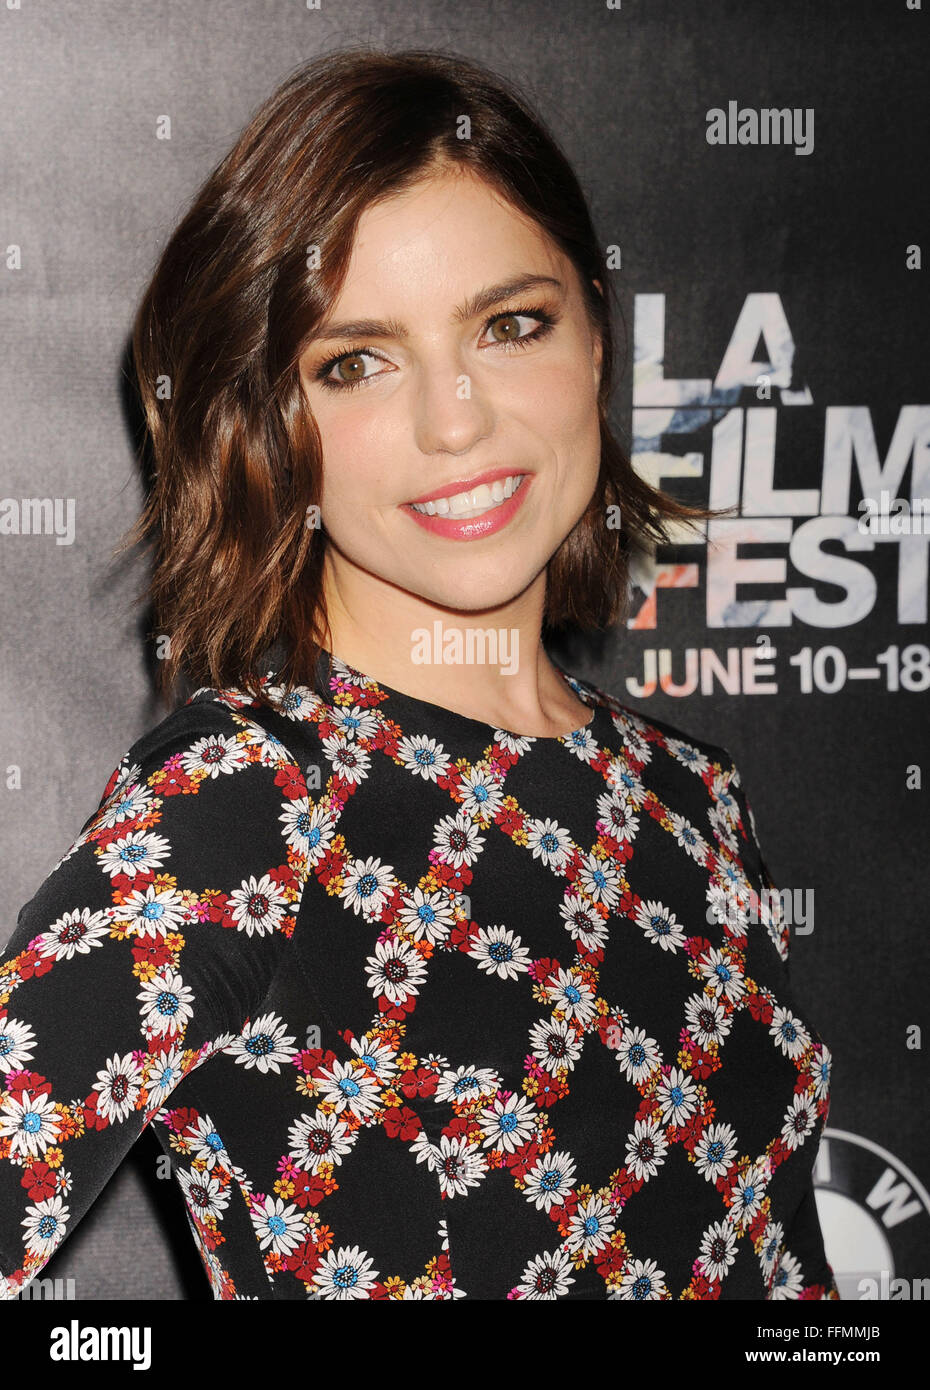 Actress Angela Trimbur attends 'The Final Girls' screening during the 2015 Los Angeles Film Festival at - Stock Image